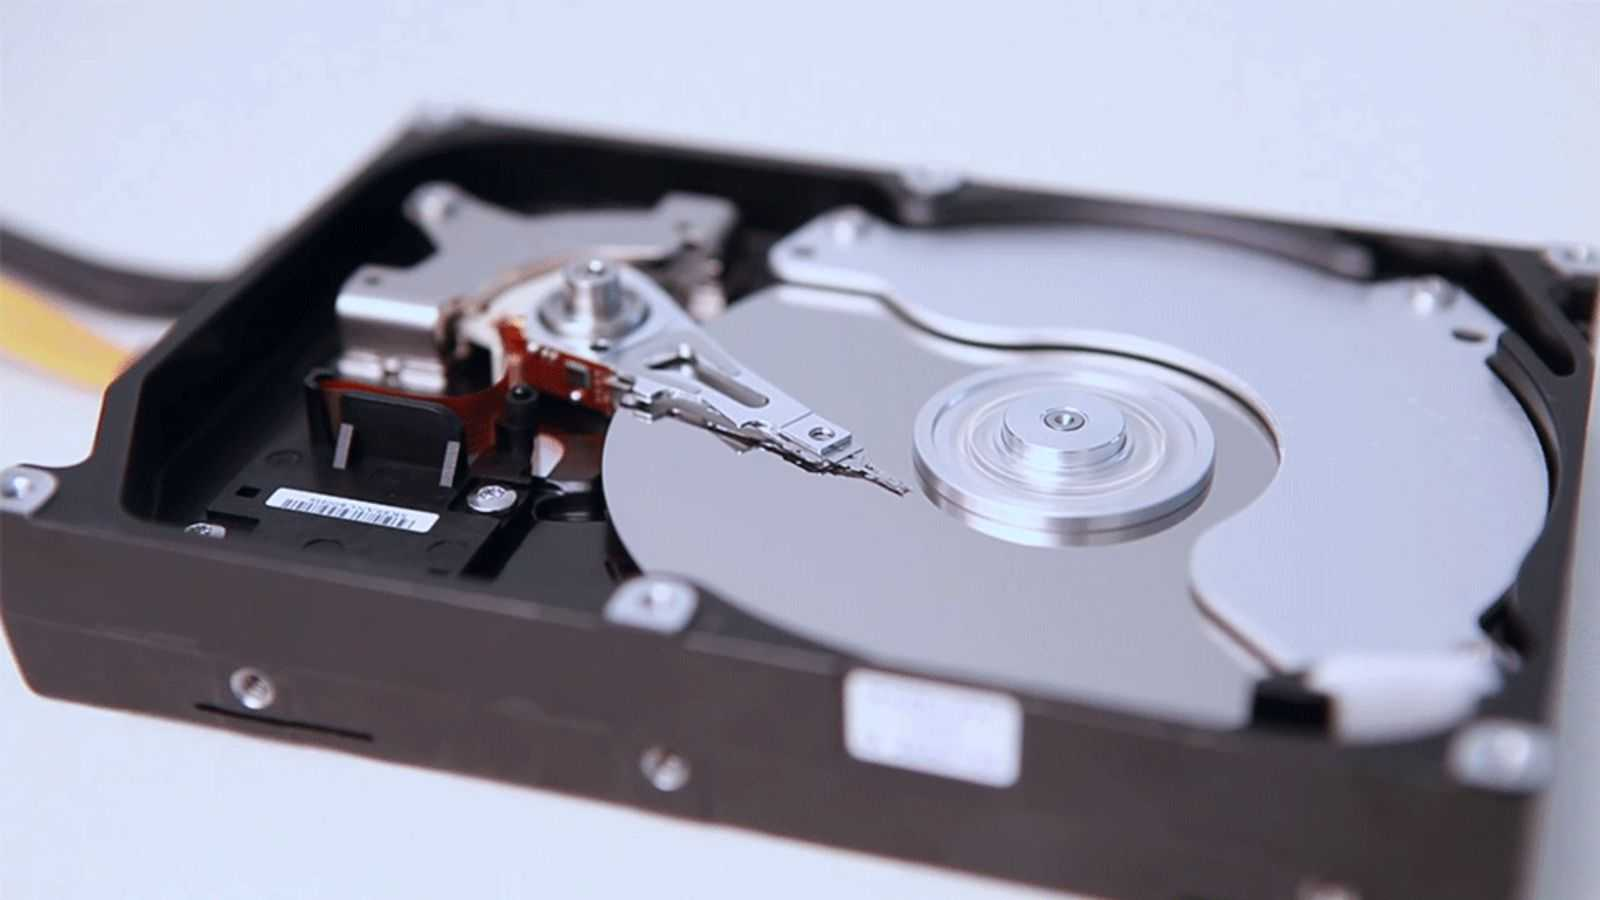 Mesa Data Recovery - Fast Fix Computer Repair